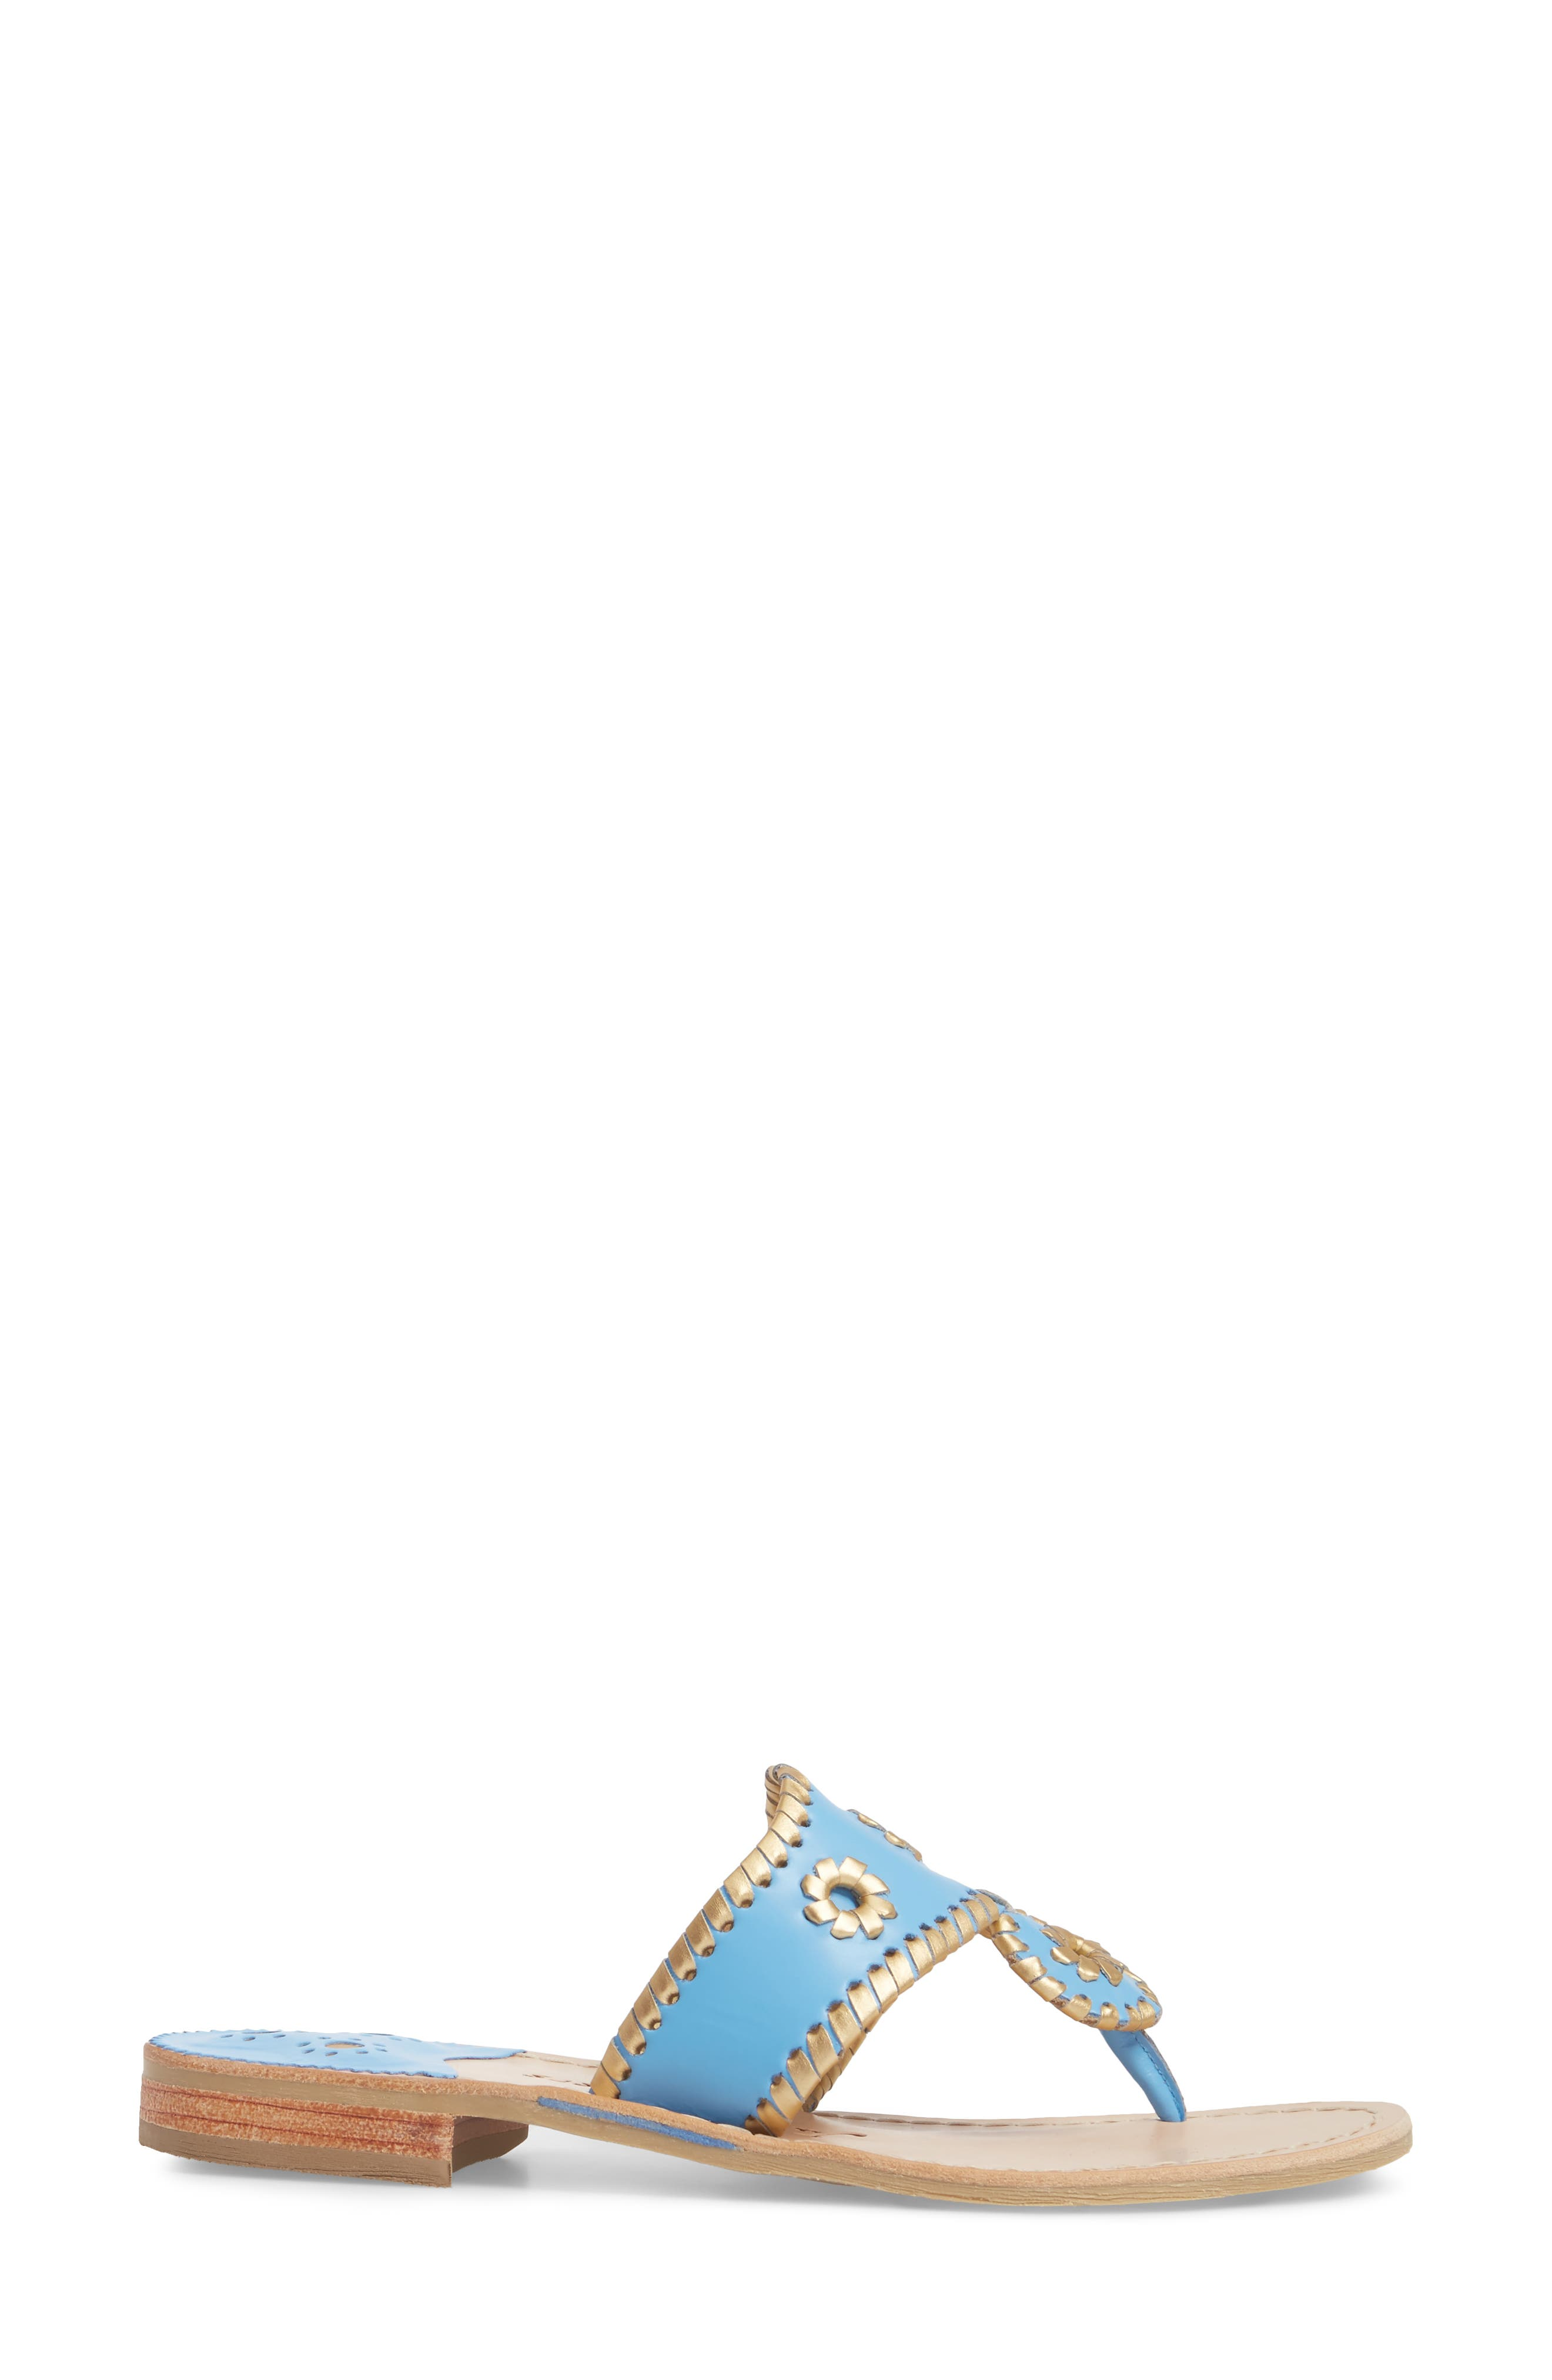 Hollis Flat Sandal,                             Alternate thumbnail 3, color,                             406